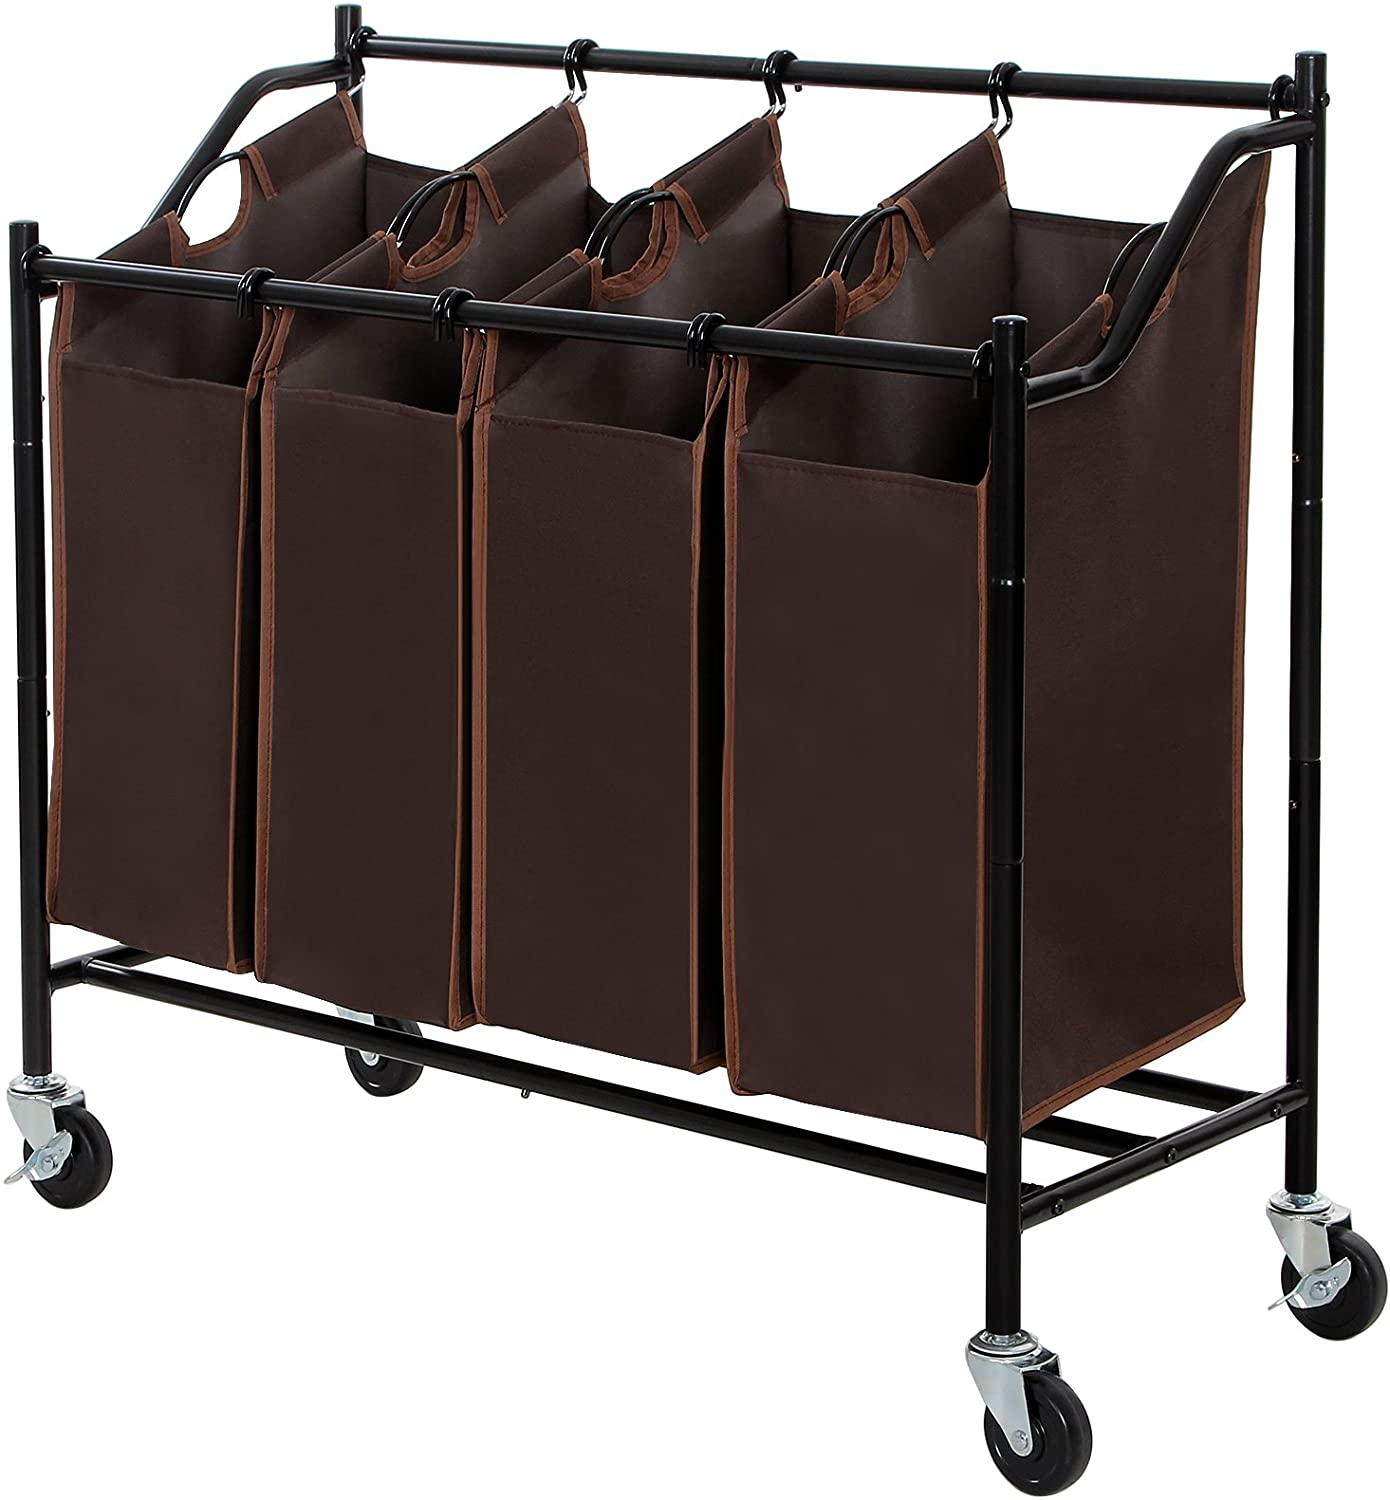 Enjoy fast, free nationwide shipping!  Family owned and operated, HawkinsWoodshop.com is your one stop shop for affordable furniture.  Shop HawkinsWoodshop.com for solid wood & metal modern, traditional, contemporary, industrial, custom, rustic, and farmhouse furniture including our Brown 4-Bag Rolling Laundry Cart.